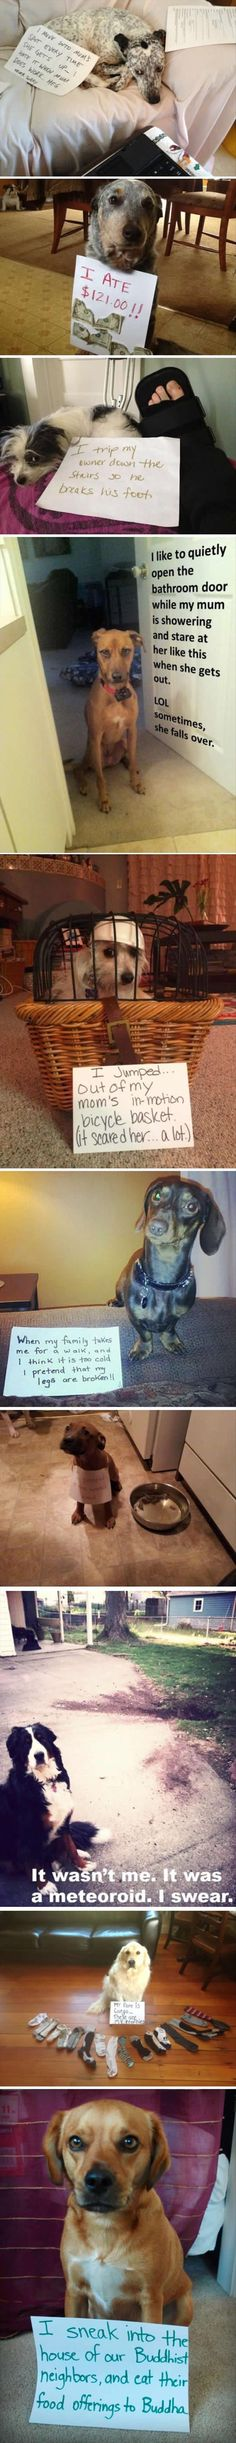 LOL ..BEST dog shame ever!!